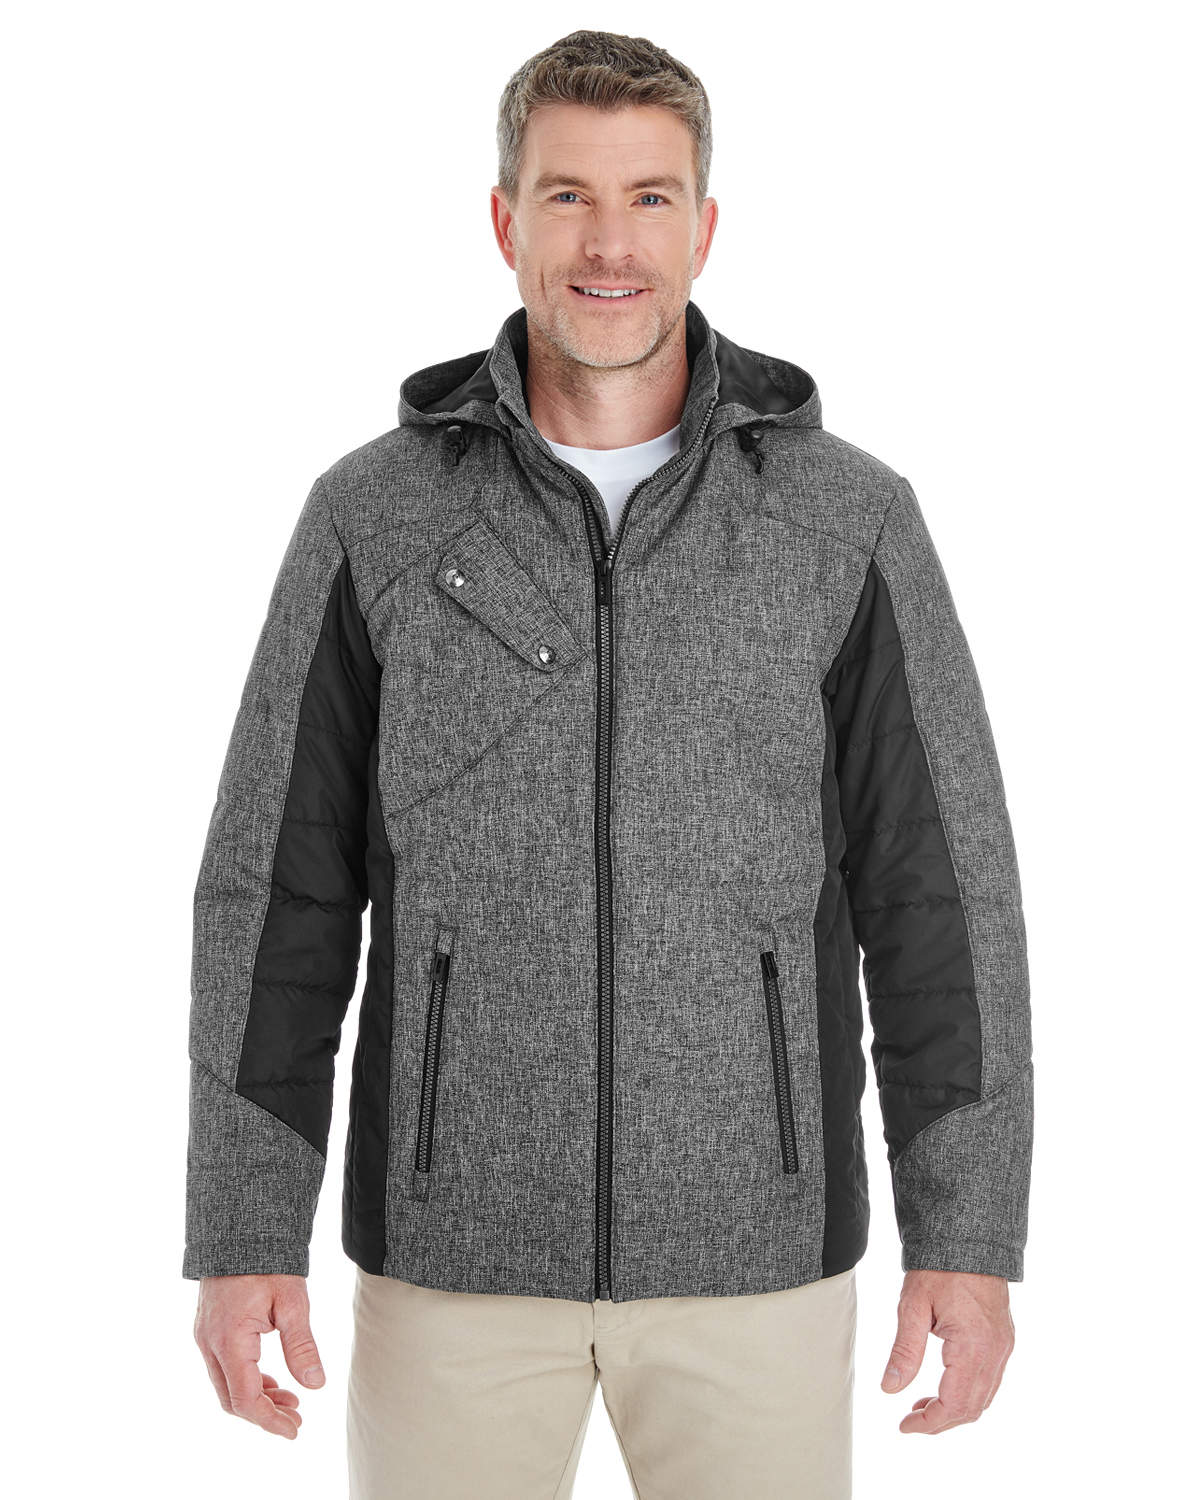 Men's Midtown Insulated Fabric-block Jacket with Crosshatch Melange